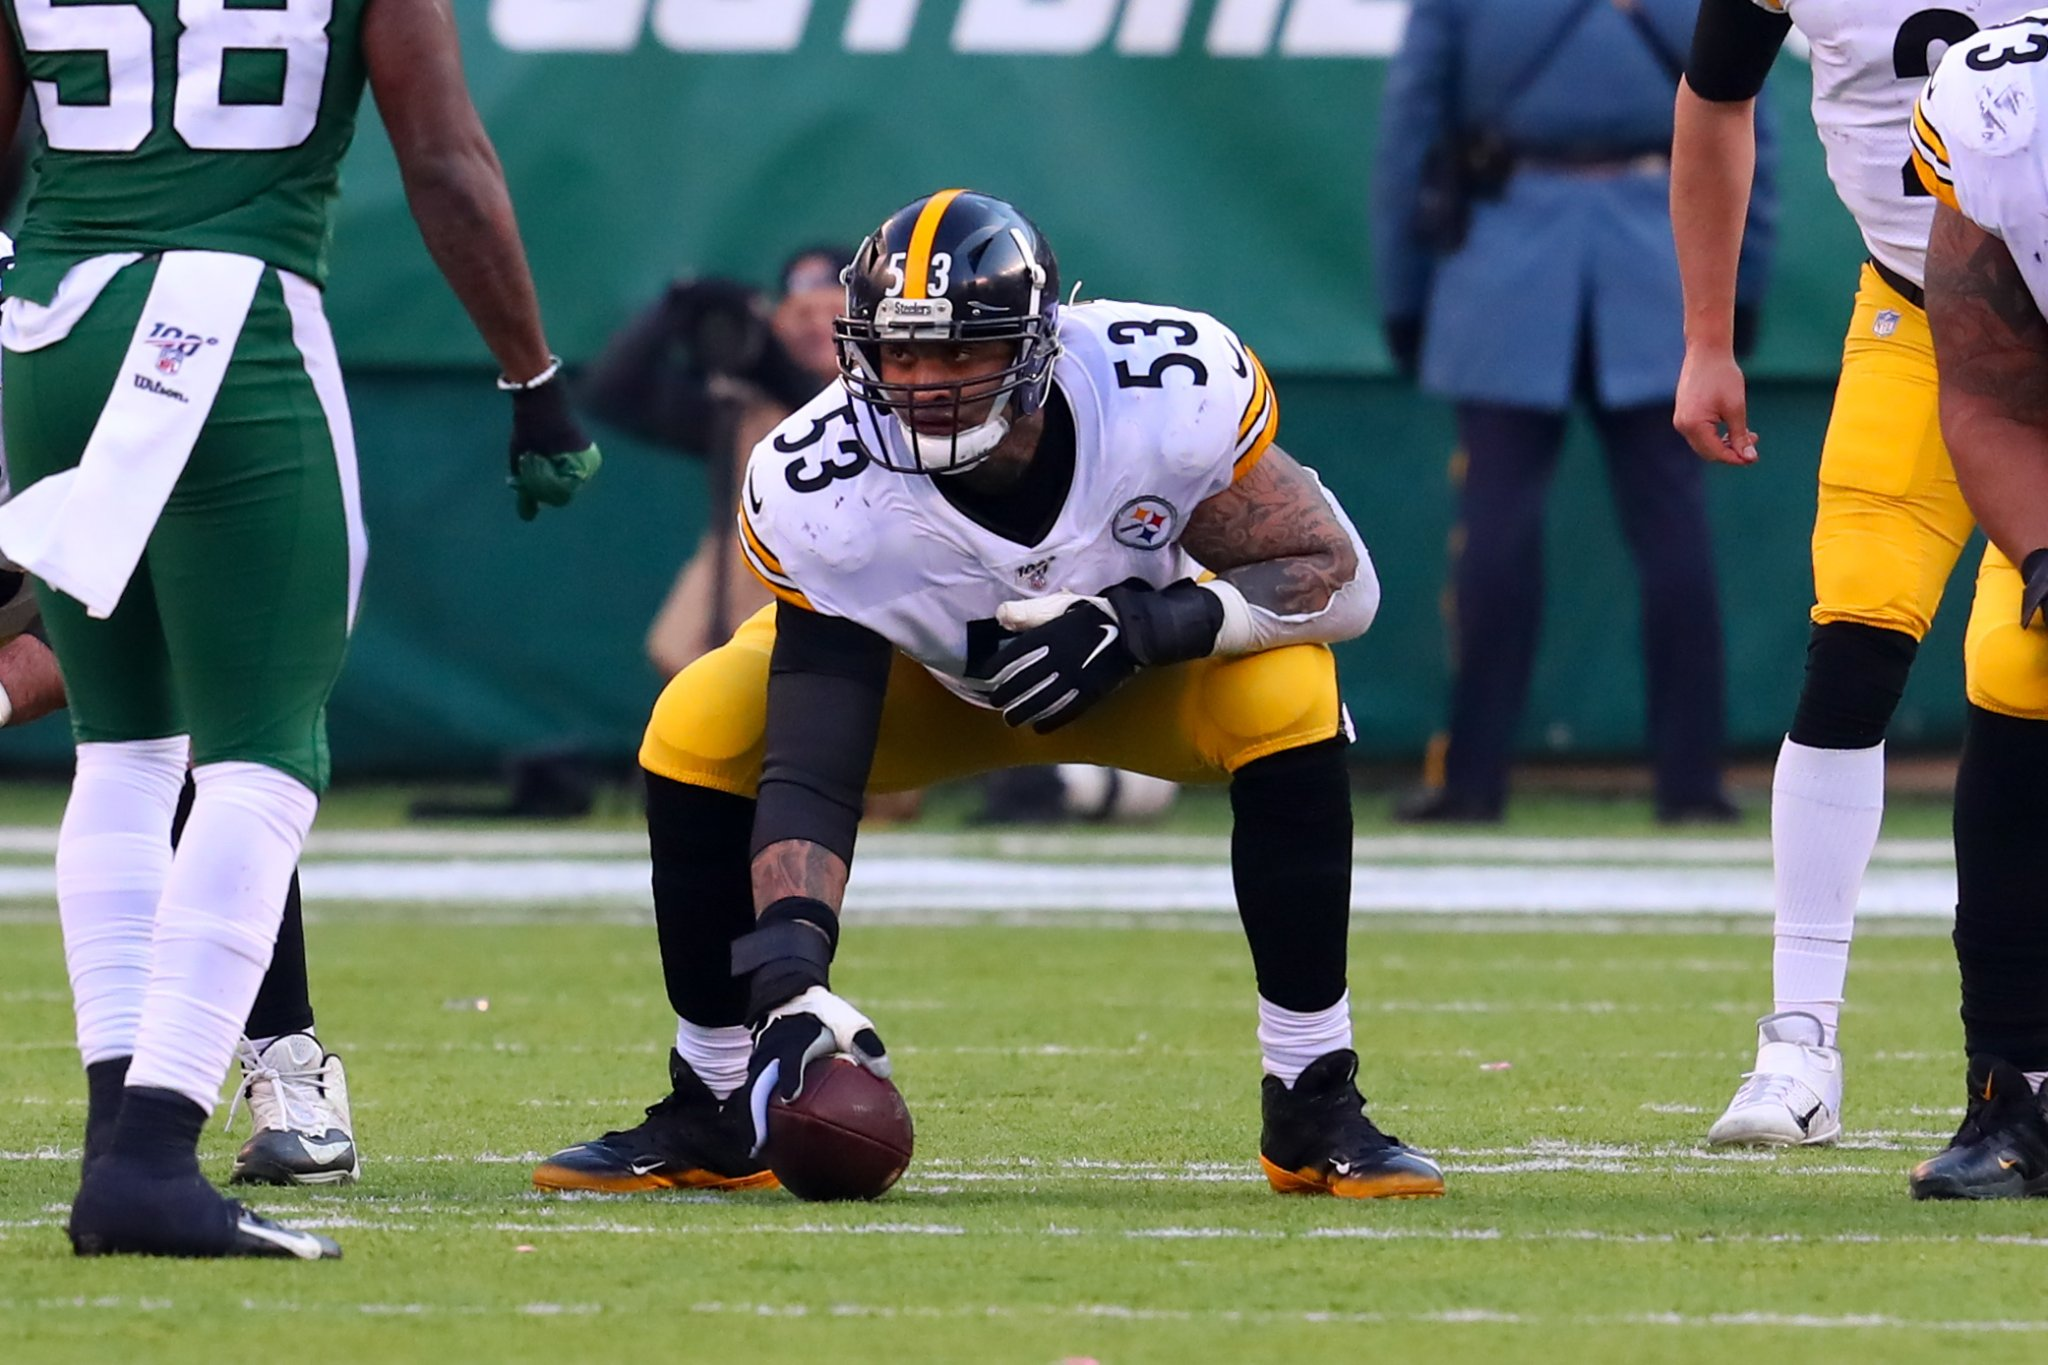 Steelers' Maurkice Pouncey Honors Slain Police Officer Eric Kelly On His Helmet During Game Against Broncos - BroBible